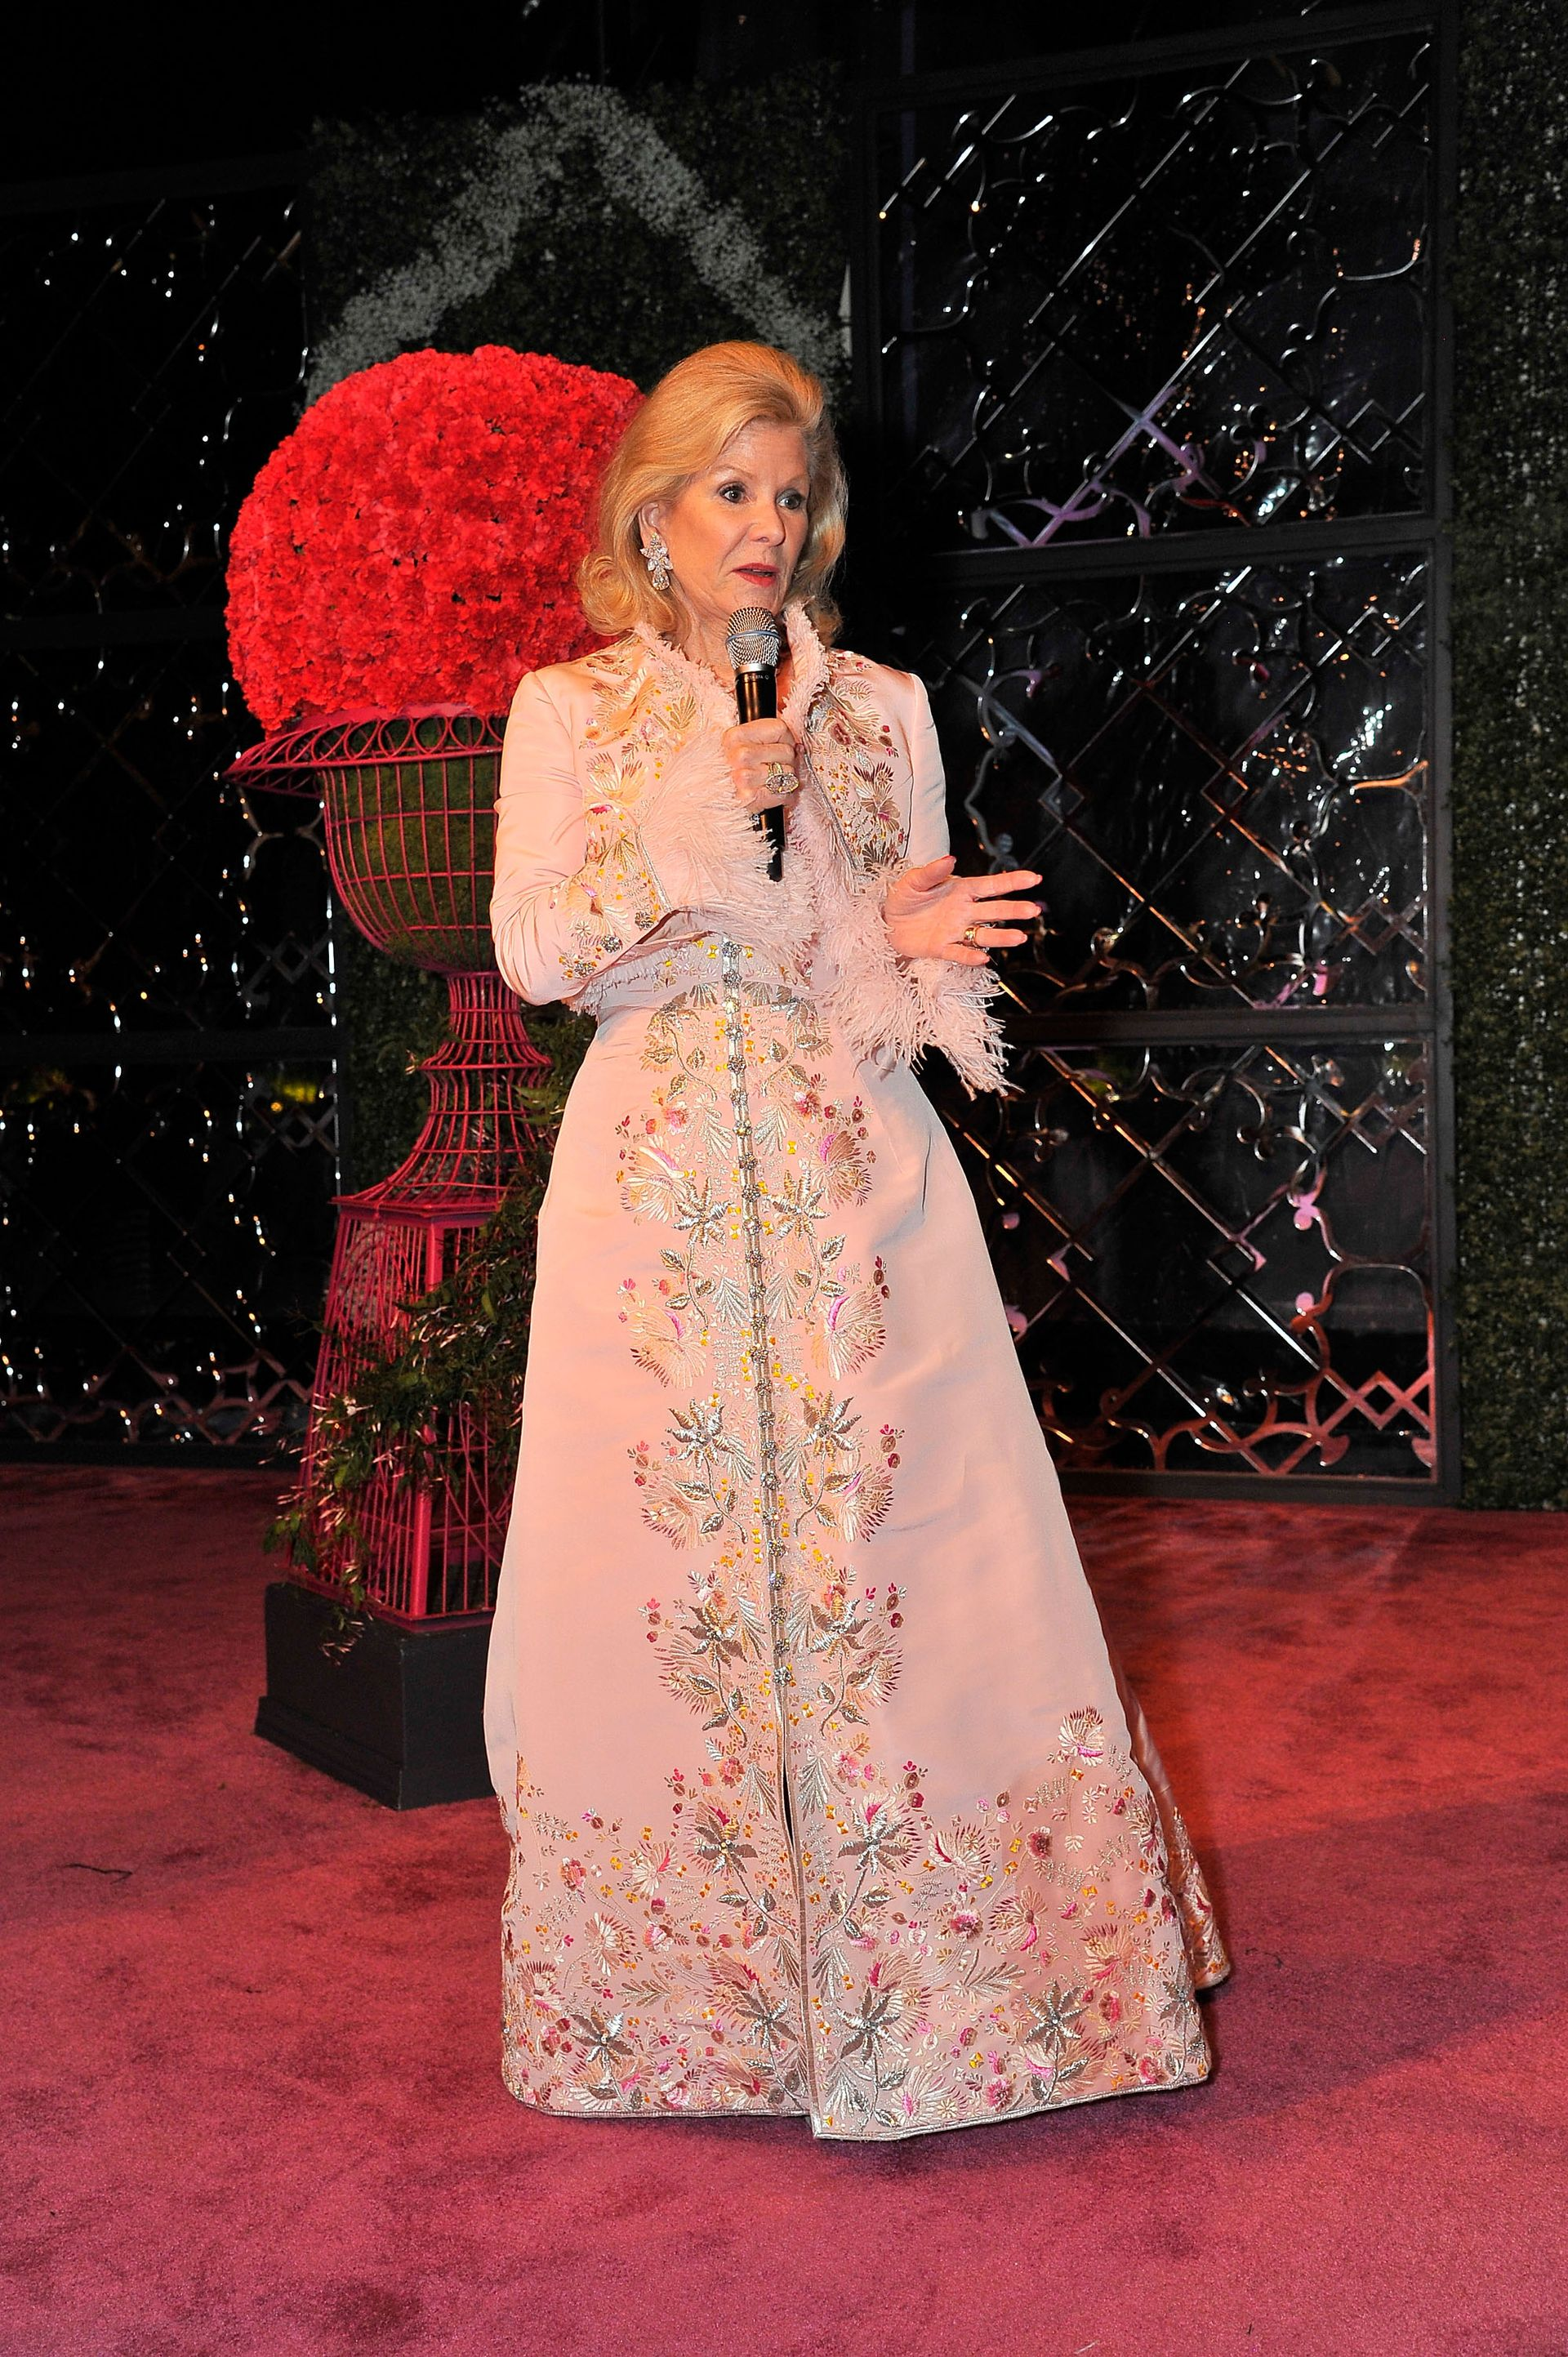 Diane B. Wilsey speaks during the Oscar de la Renta: The Retrospective Benefit Gala at the De Young Museum in San Francisco Photo: Steve Jennings/Getty Images for Fine Arts Museums of San Francisco